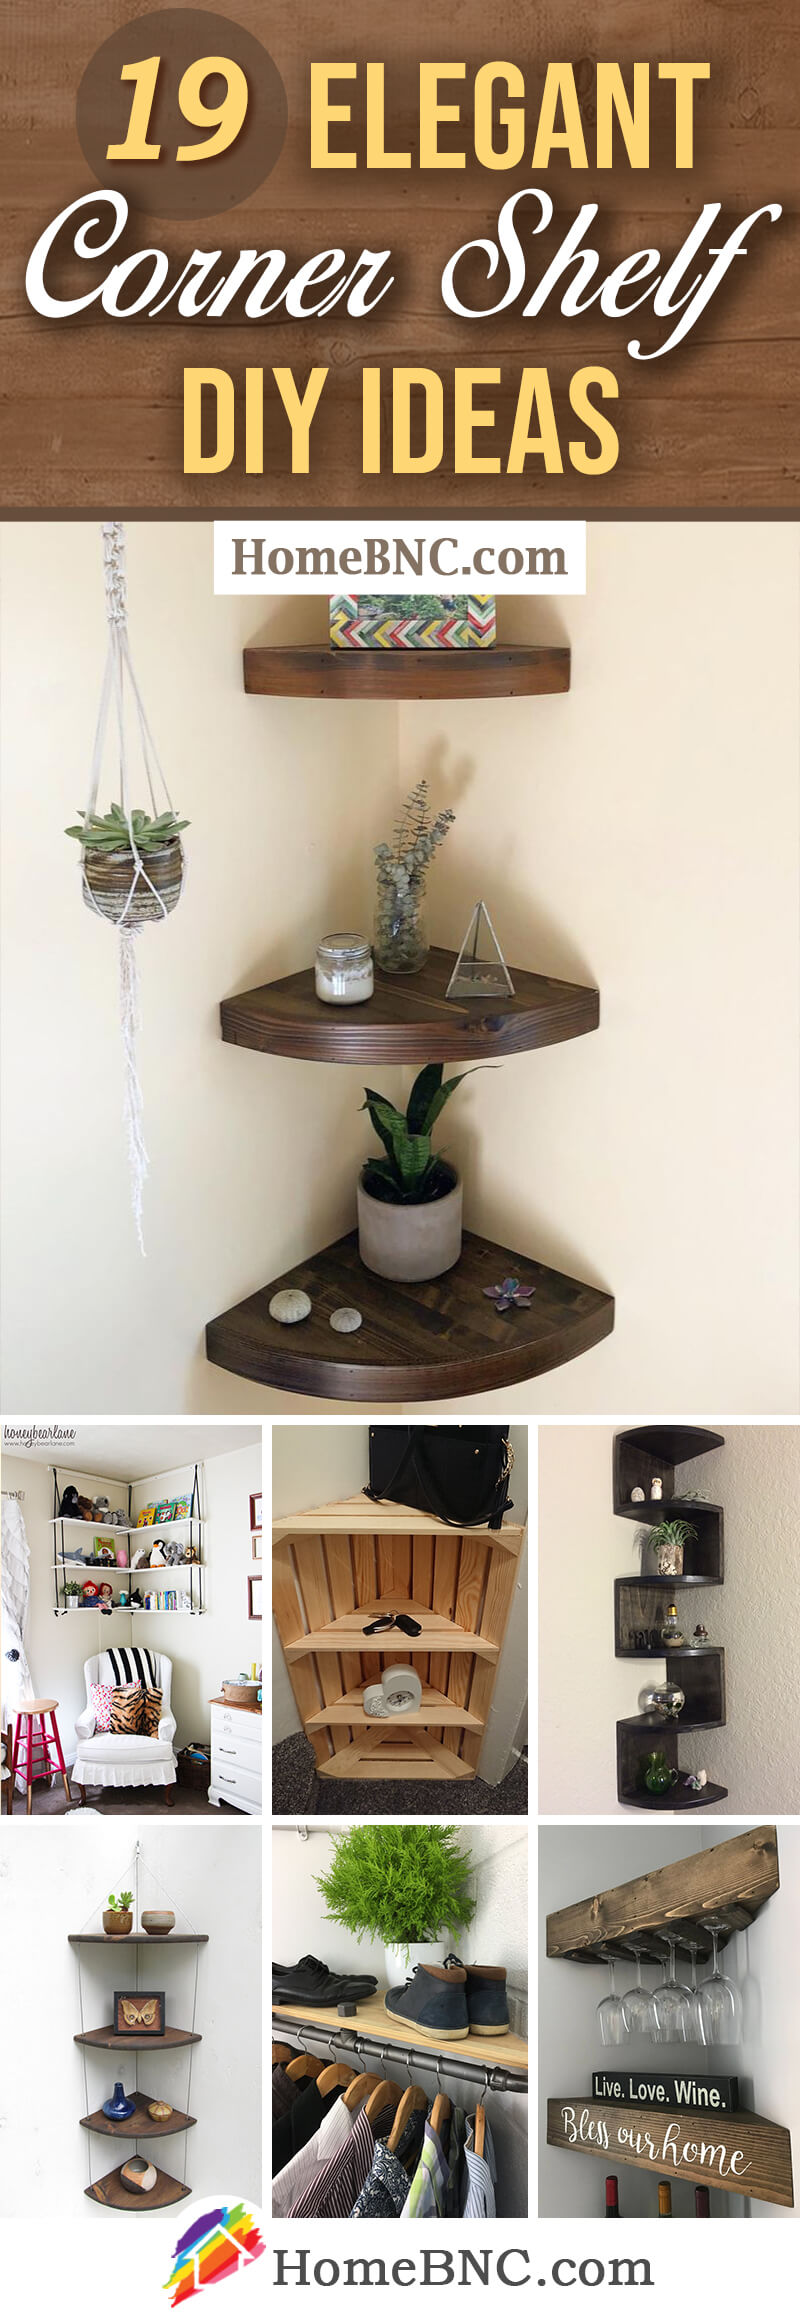 Design Ideas for DIY Corner Shelves